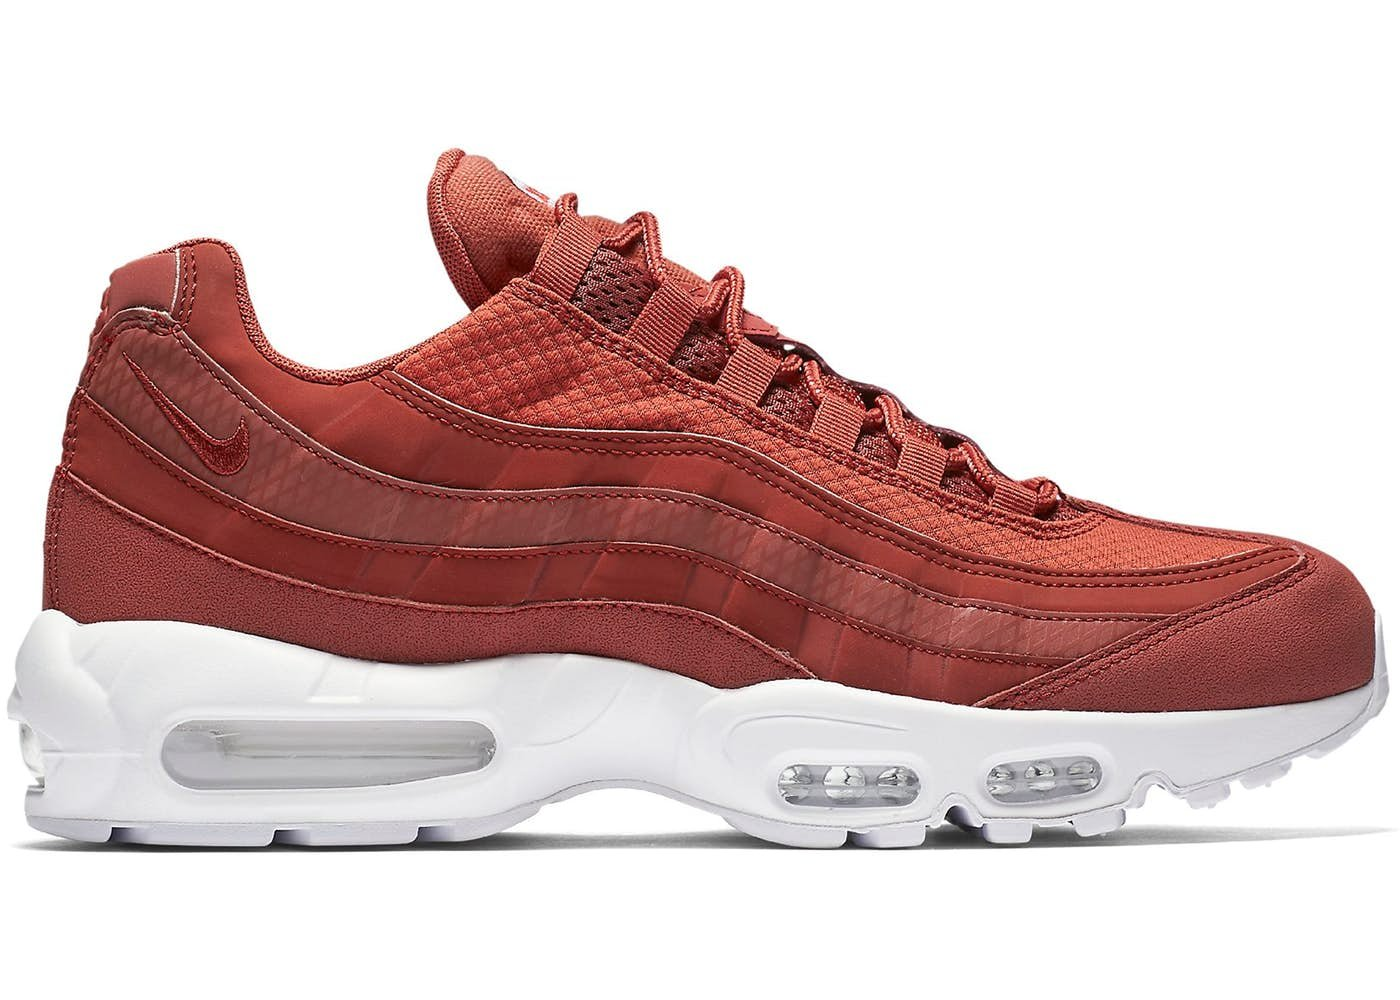 Nike Air Max 95 Premium SE Mens Running Trainers 924478 Sneakers Shoes (UK 9 US 10 EU 44, Dusty Peach White 200)